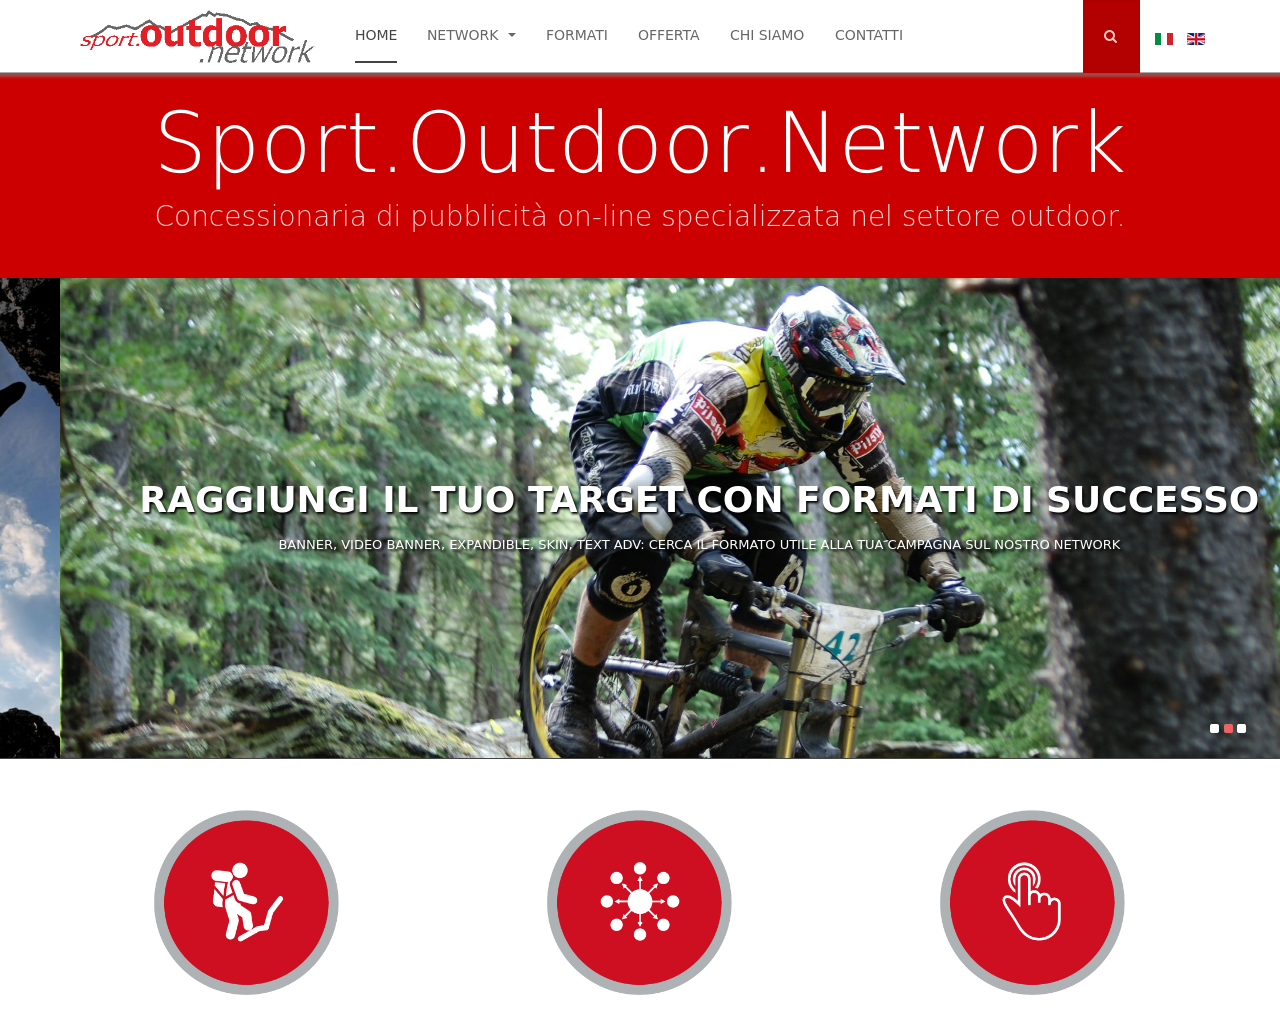 Sport.Outdoor.Network-Advertising-Reviews-Pricing